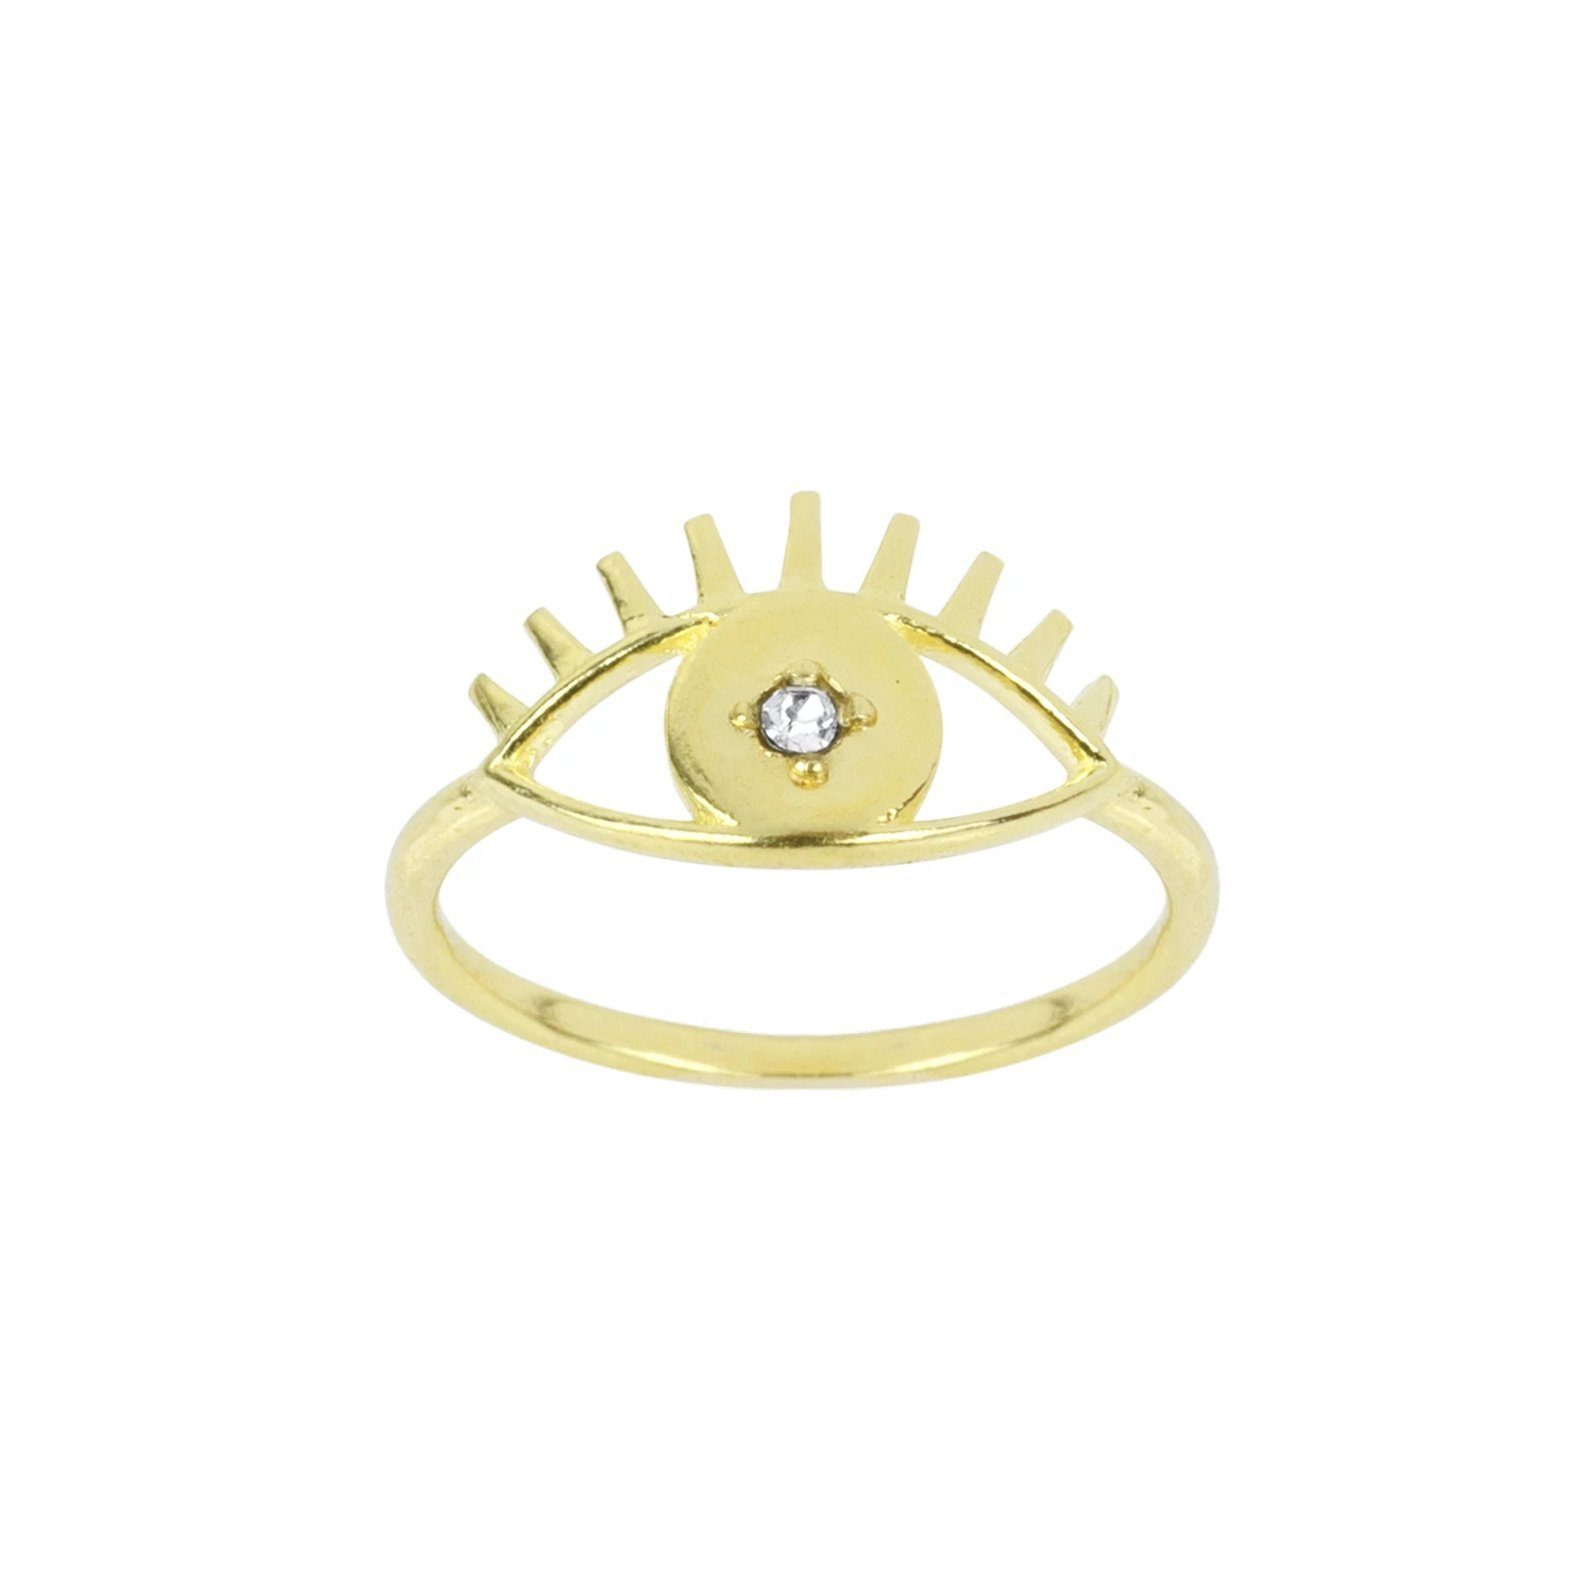 Keeping all bad juju away from you! Let this pretty Evil Eye Ring protect you from bad vibes and spread the love to one and all.  Handmade in California by Katie Dean Jewelry.